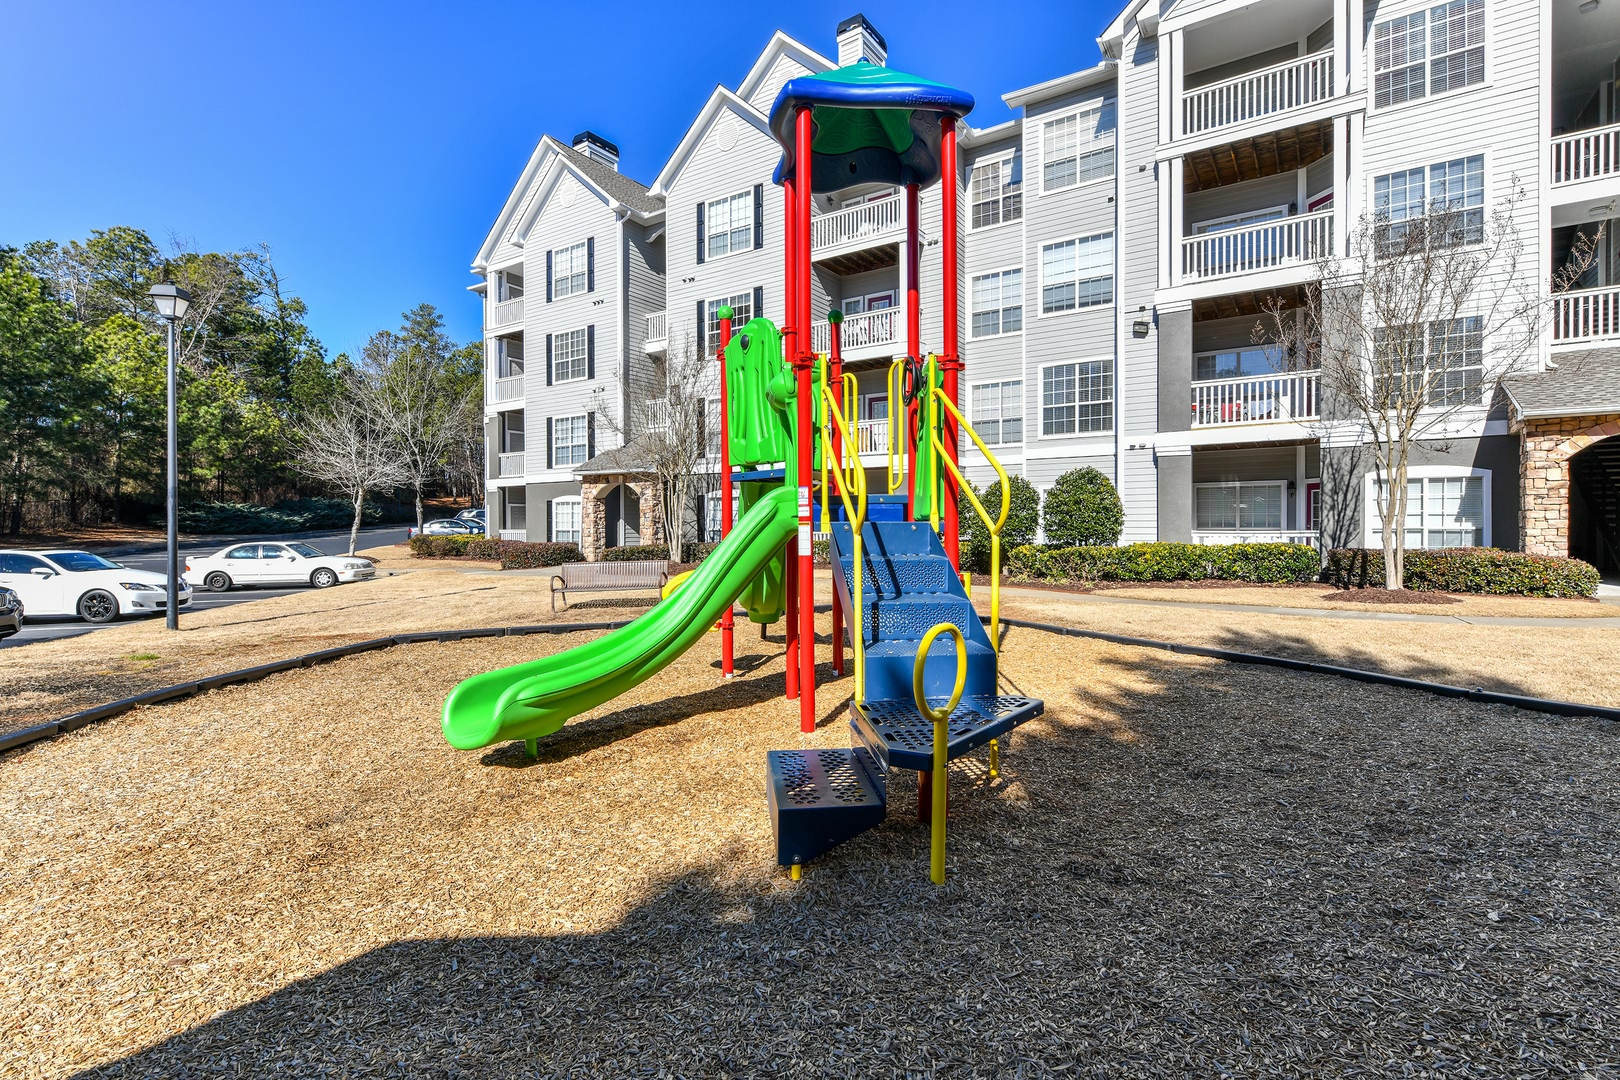 Retreat at Sweetwater Renovated Apartments in Lawrenceville